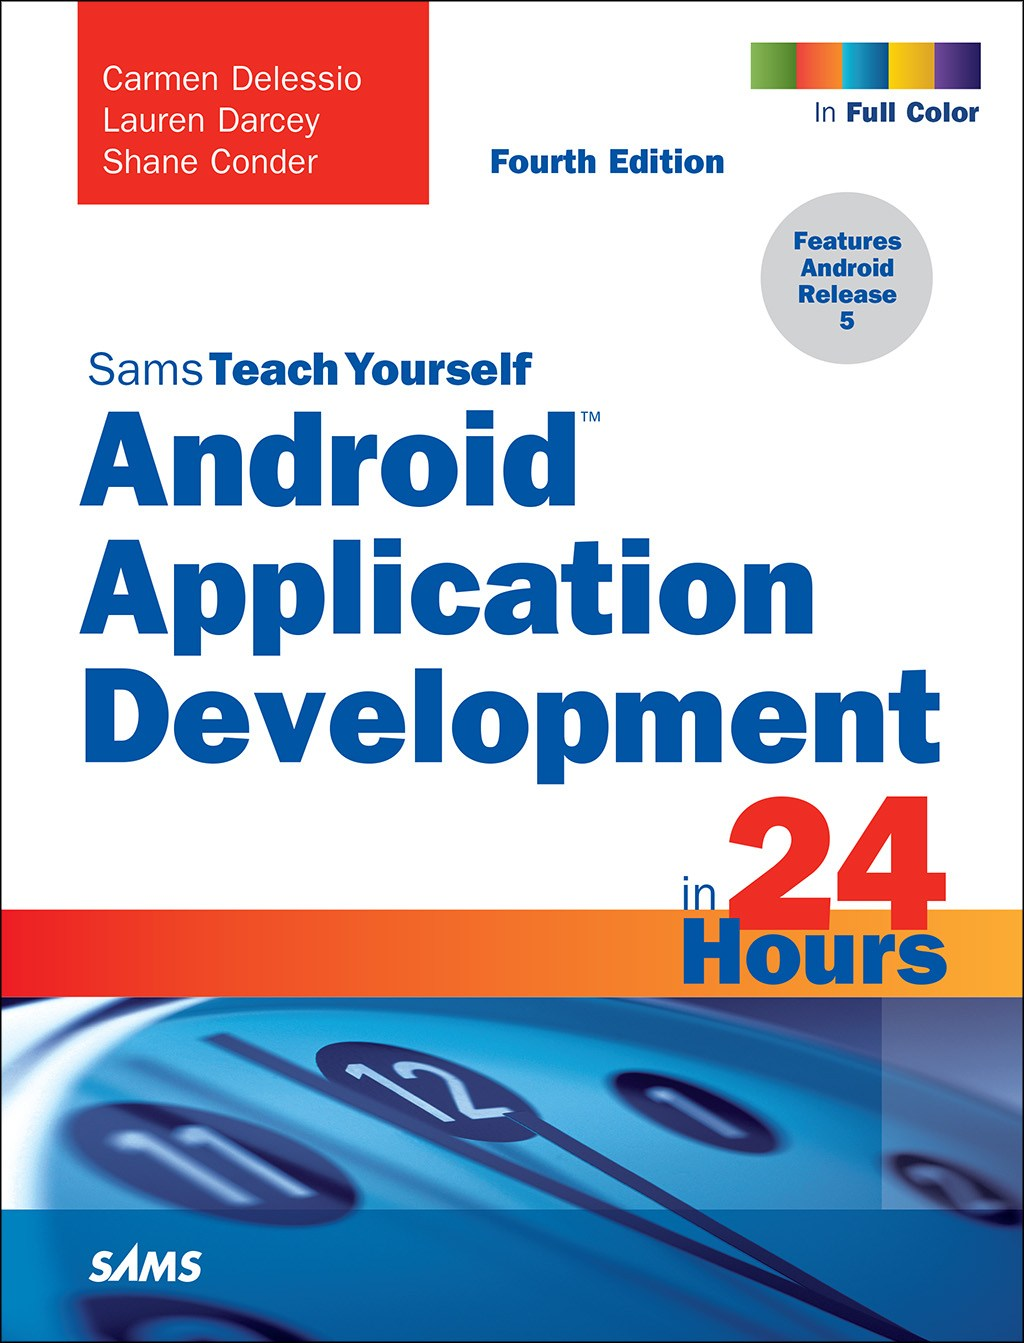 Sams Teach Yourself Android Application Development in 24 Hours, 4th Edition